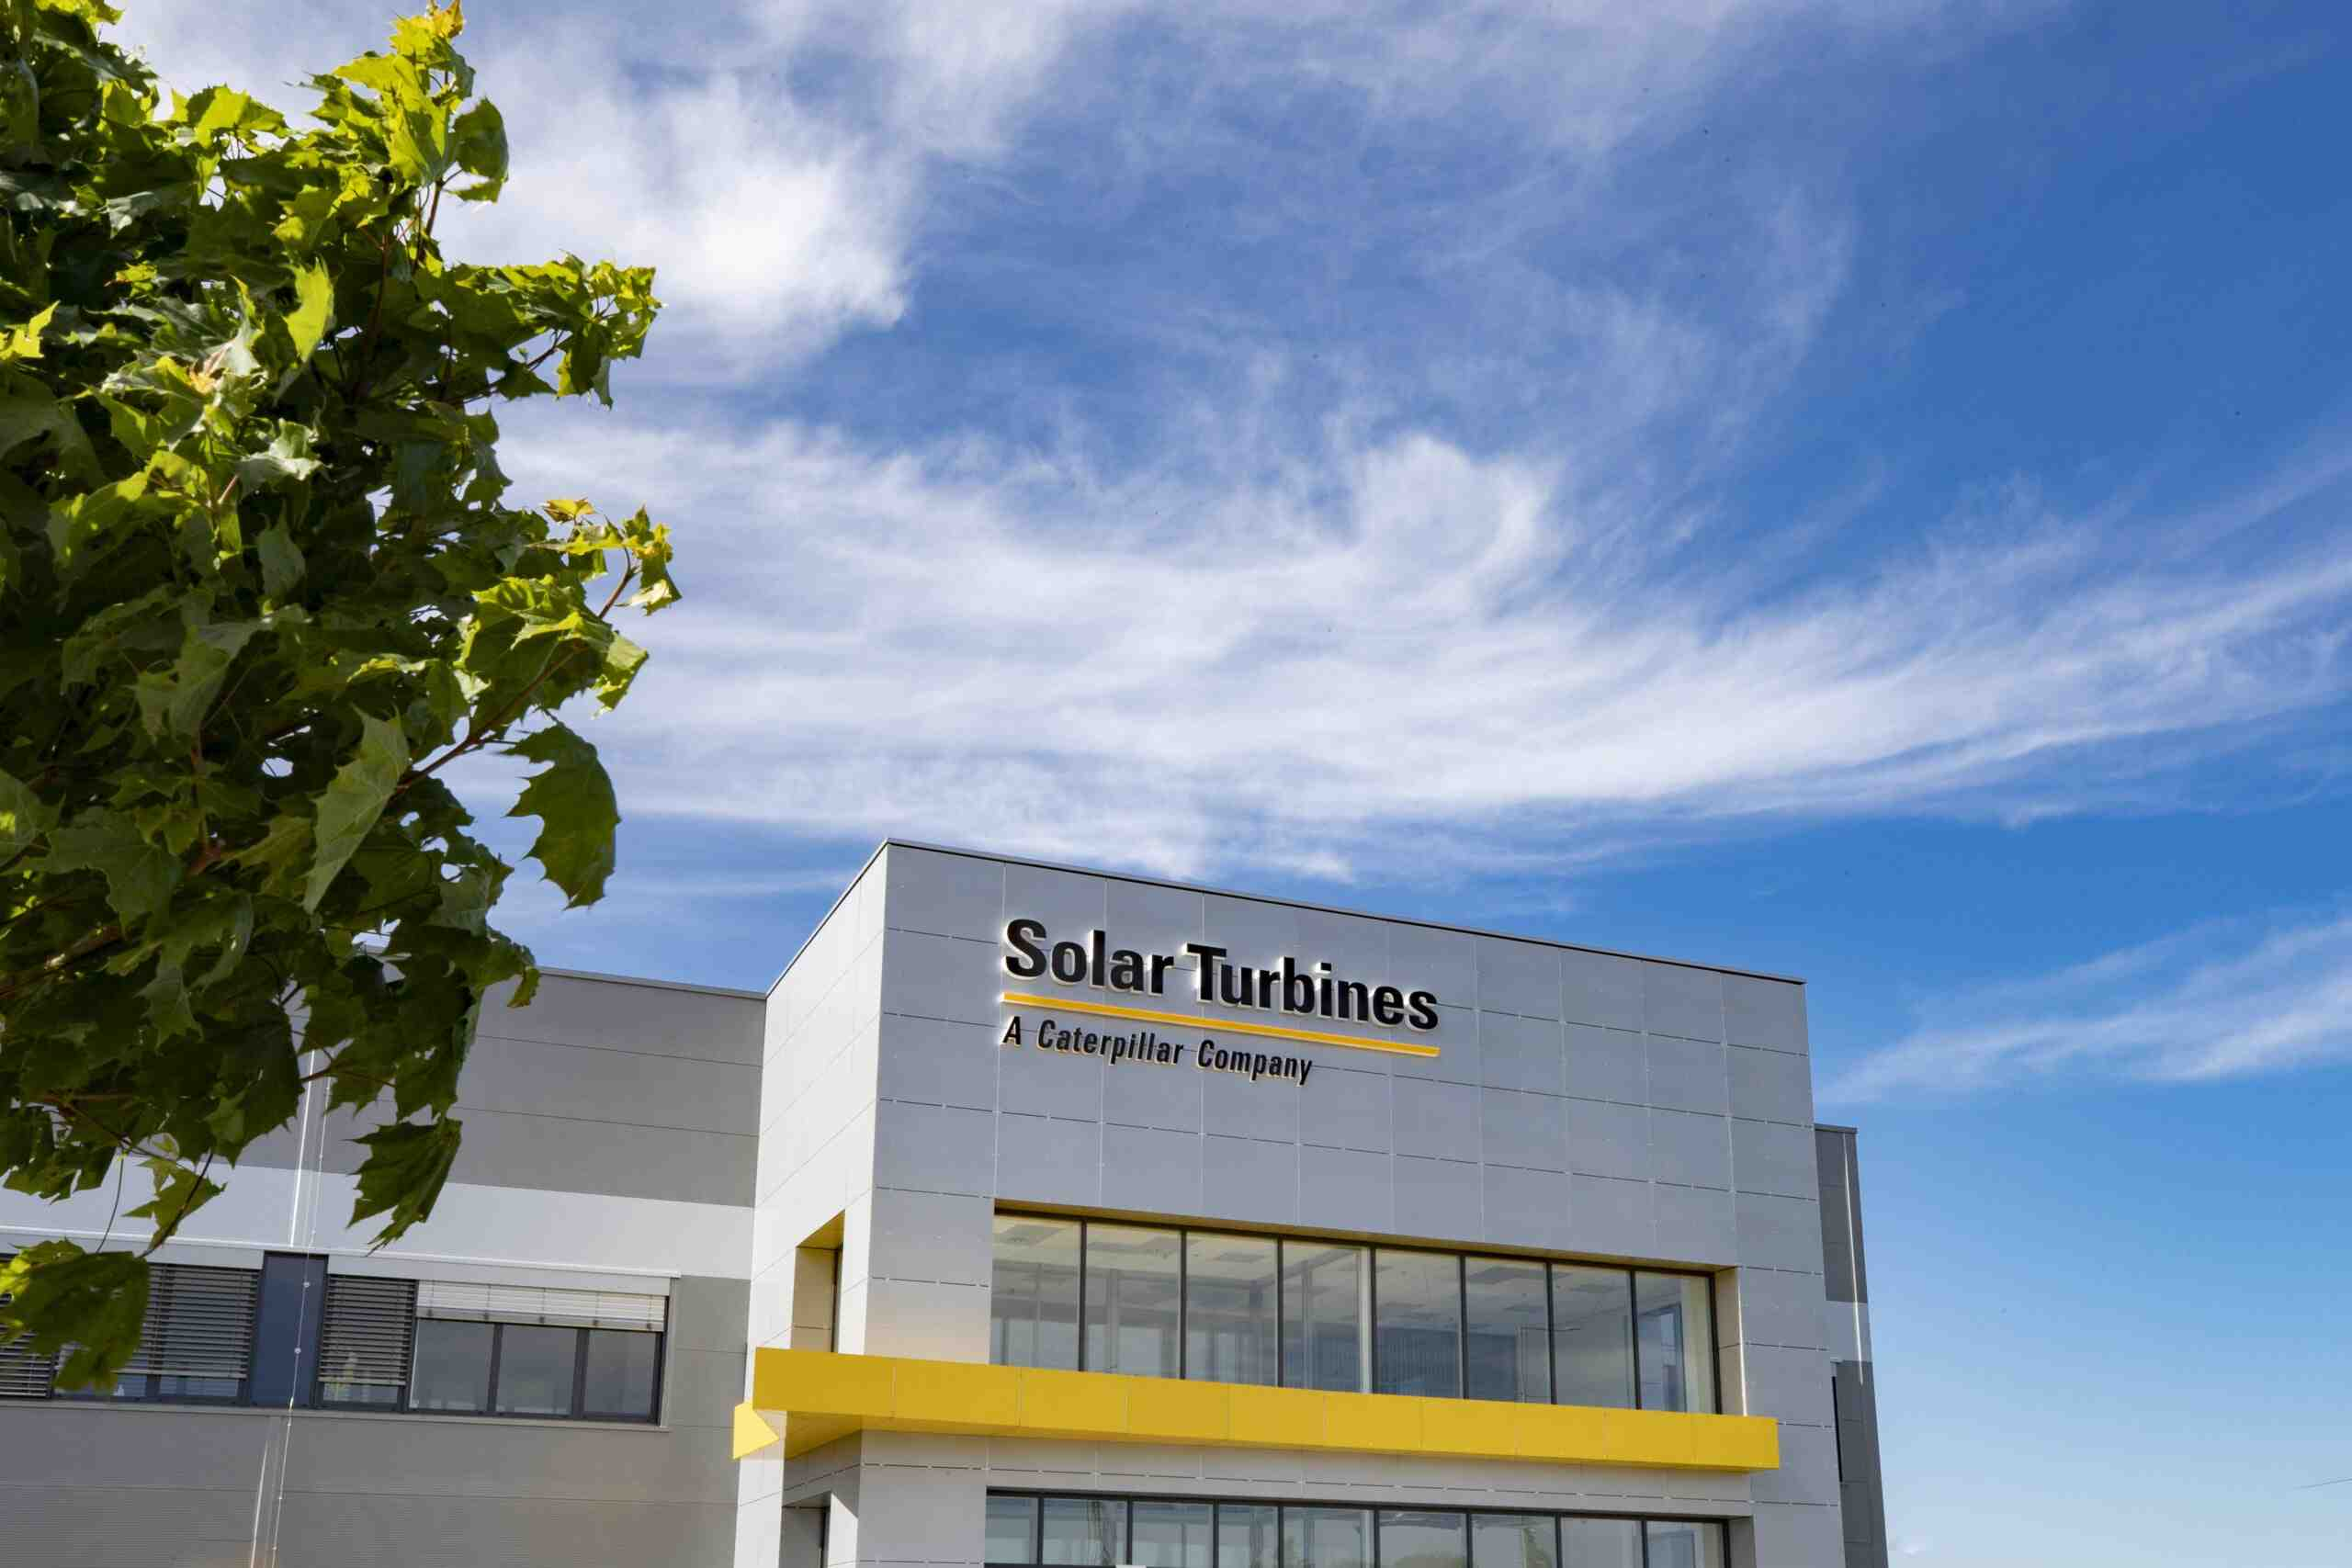 Is Solar turbines a Fortune 500 company?